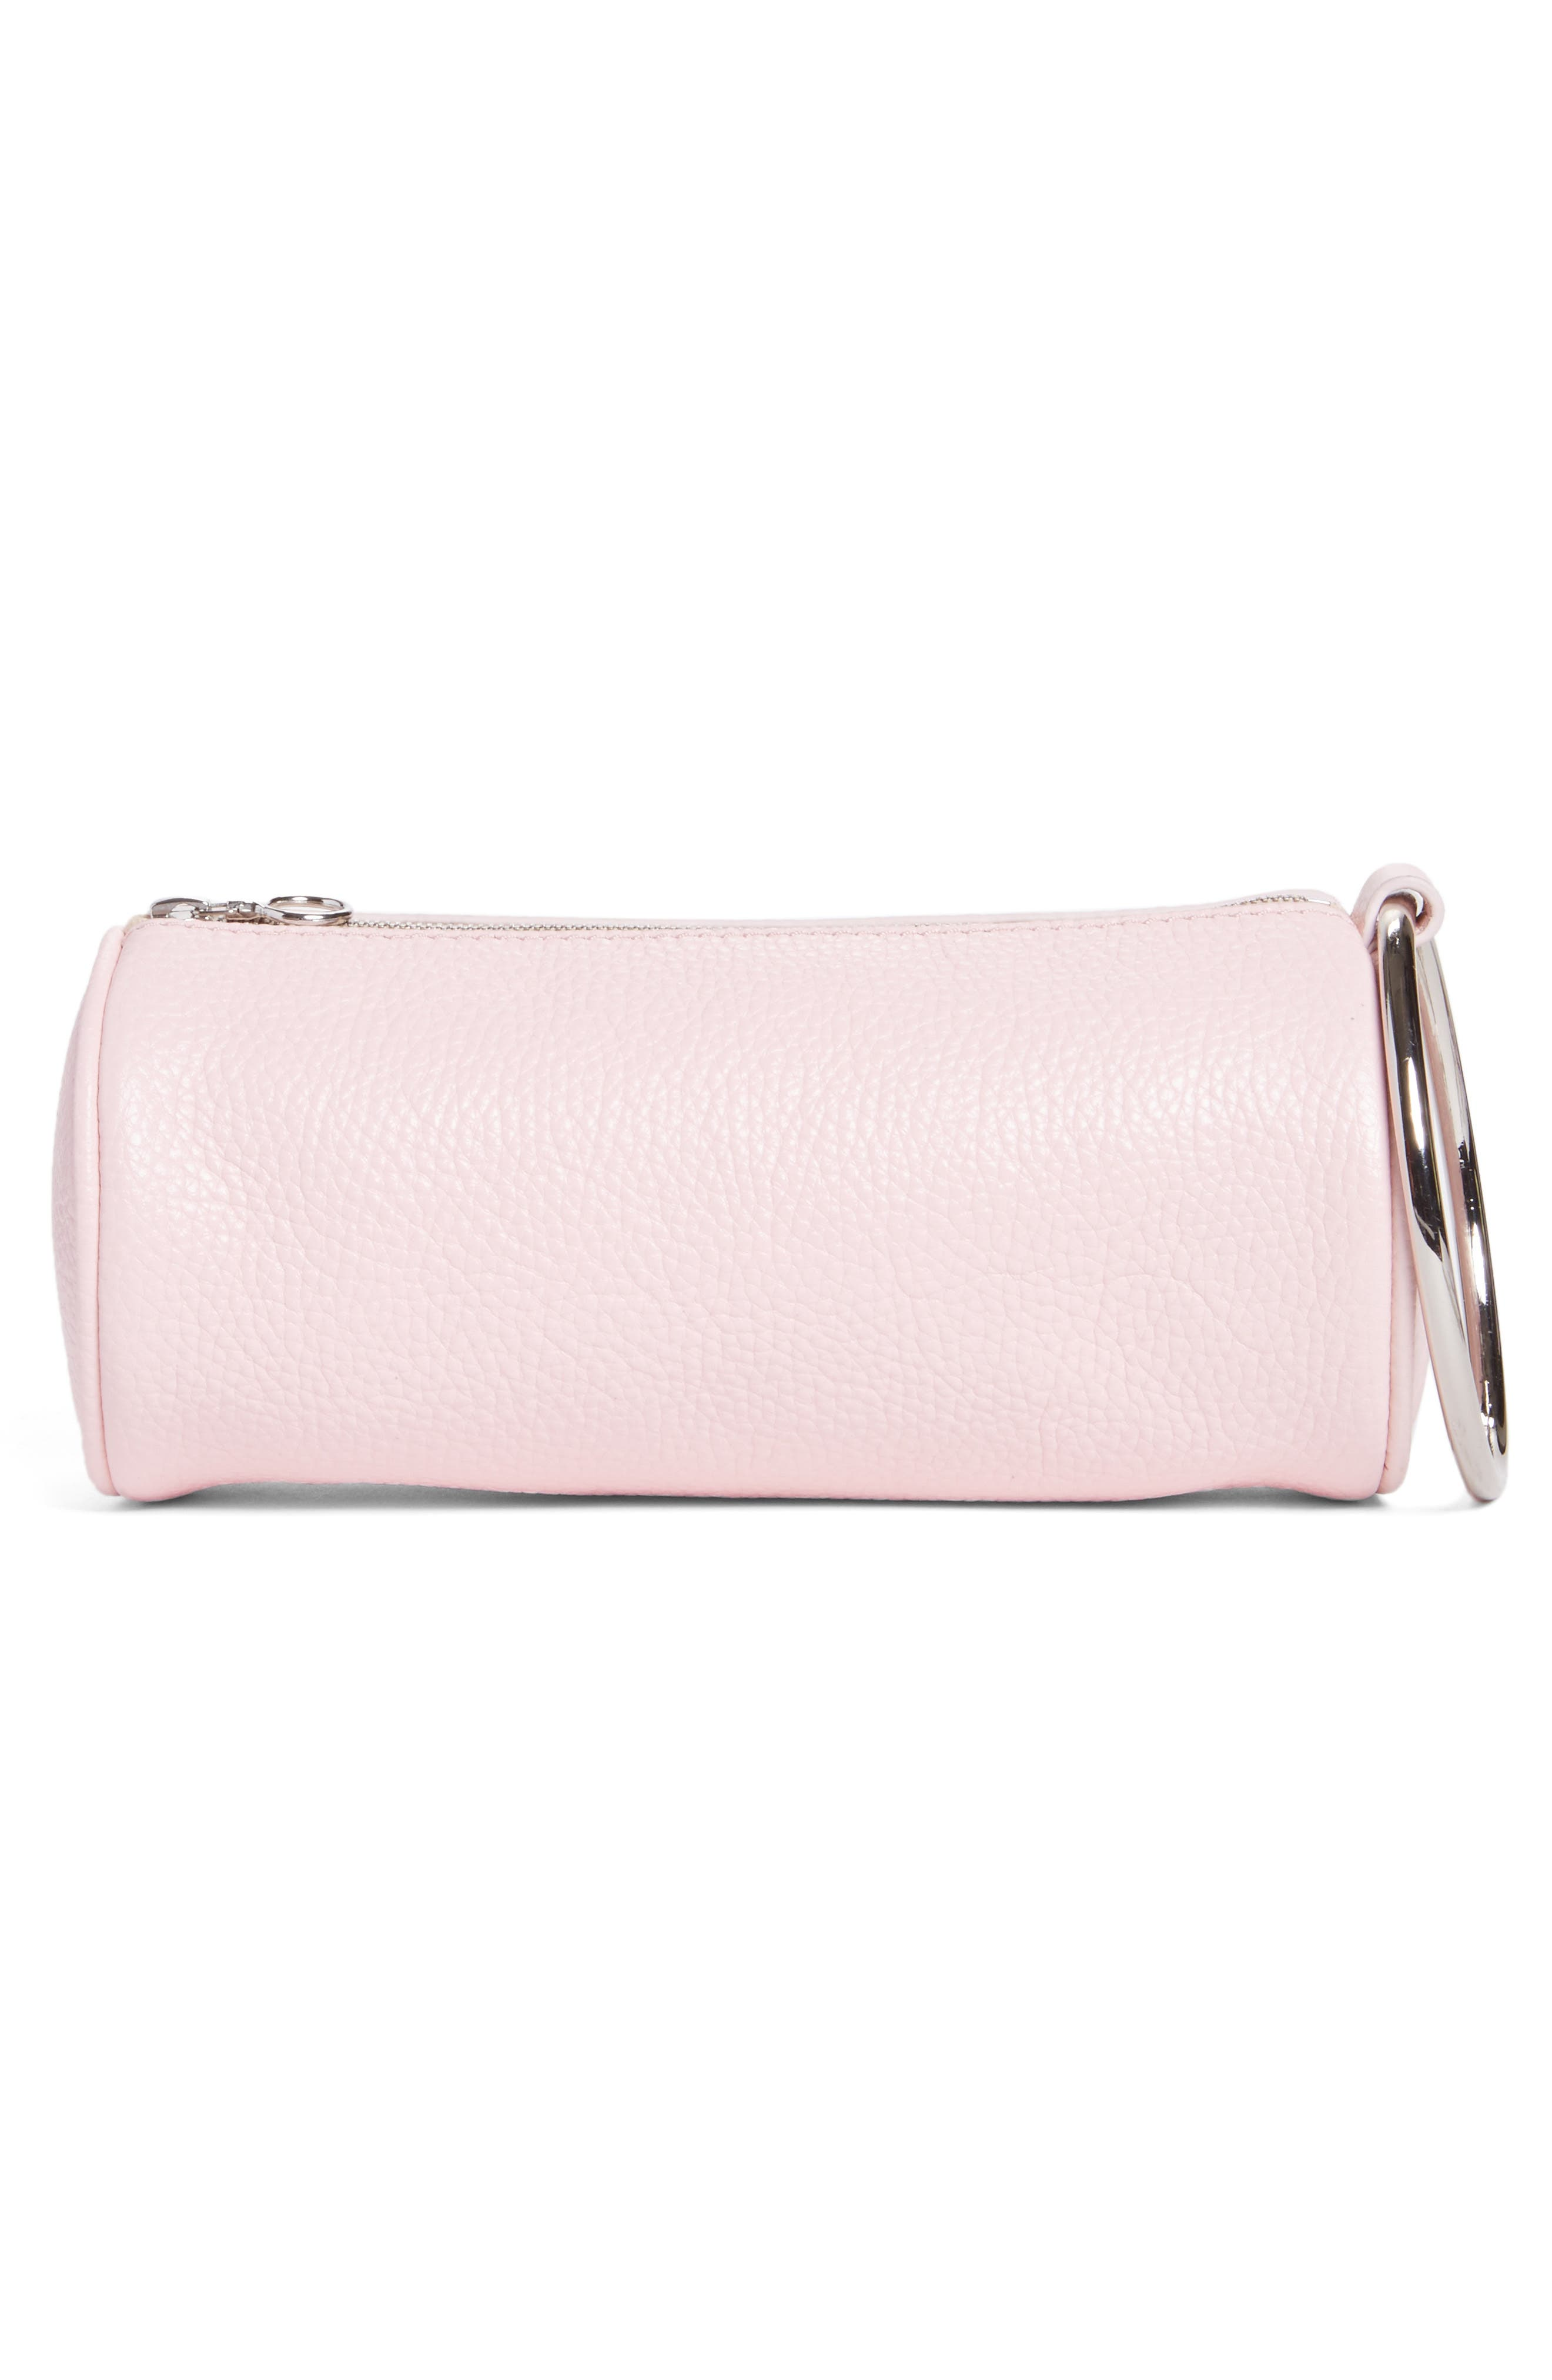 Pebbled Leather Duffel Wristlet Clutch,                             Alternate thumbnail 3, color,                             Blush Pink